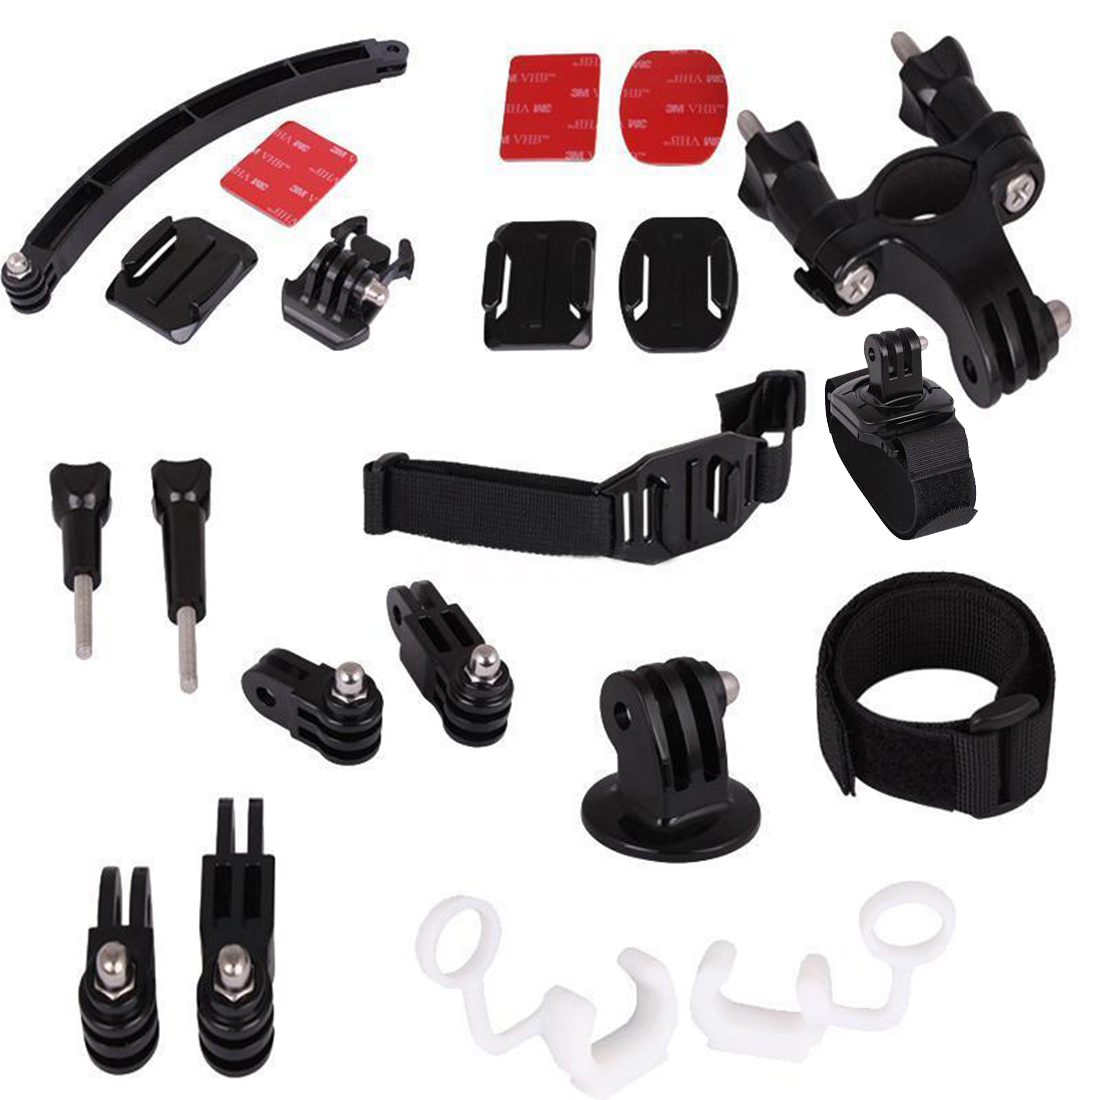 NEW 8 in 1 Mount Riding Accessories Set kit for Gopro HD Hero 1 2 3